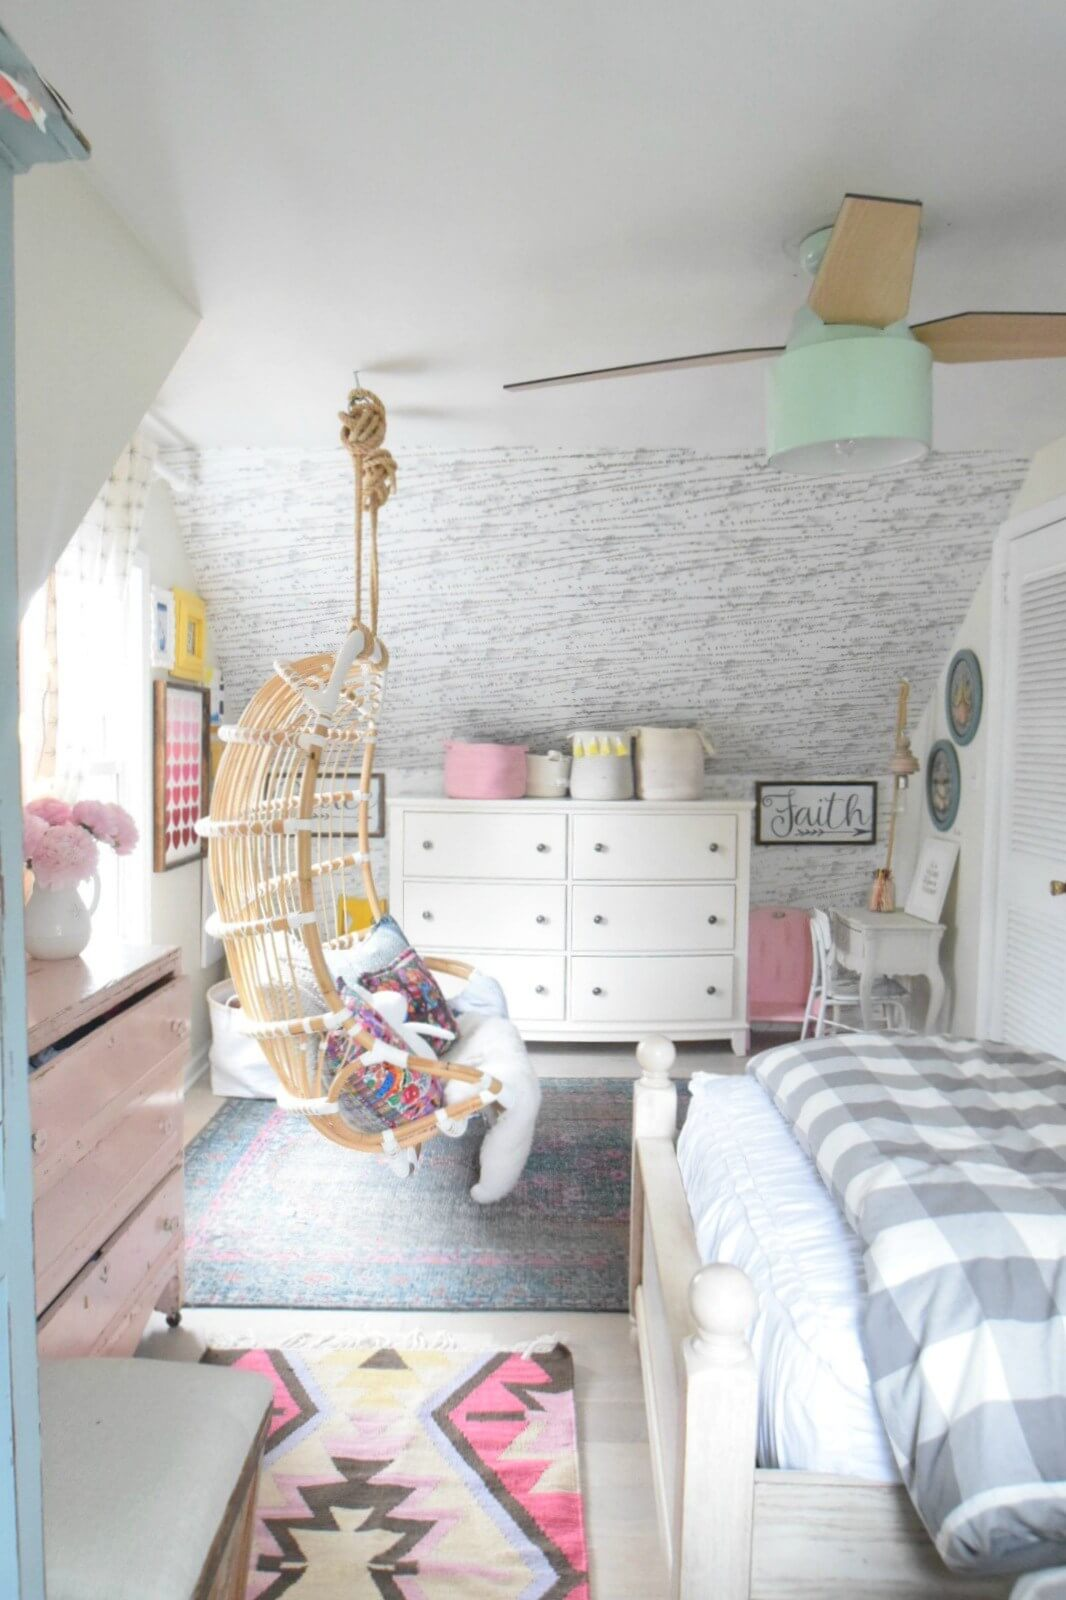 The Pastel Heaven Bedroom Decor